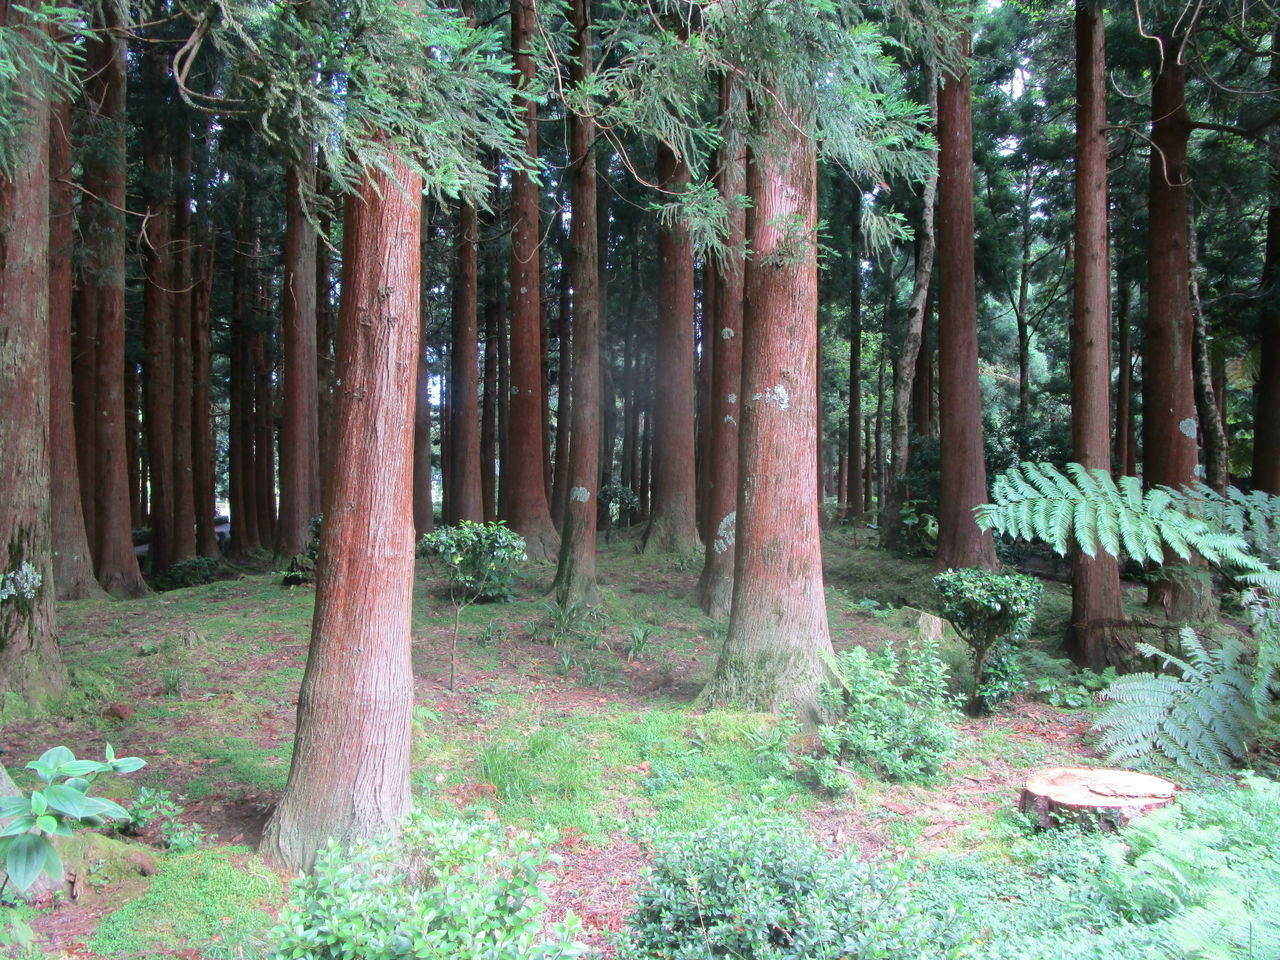 tree, forest, nature, tree trunk, growth, tranquility, no people, outdoors, beauty in nature, day